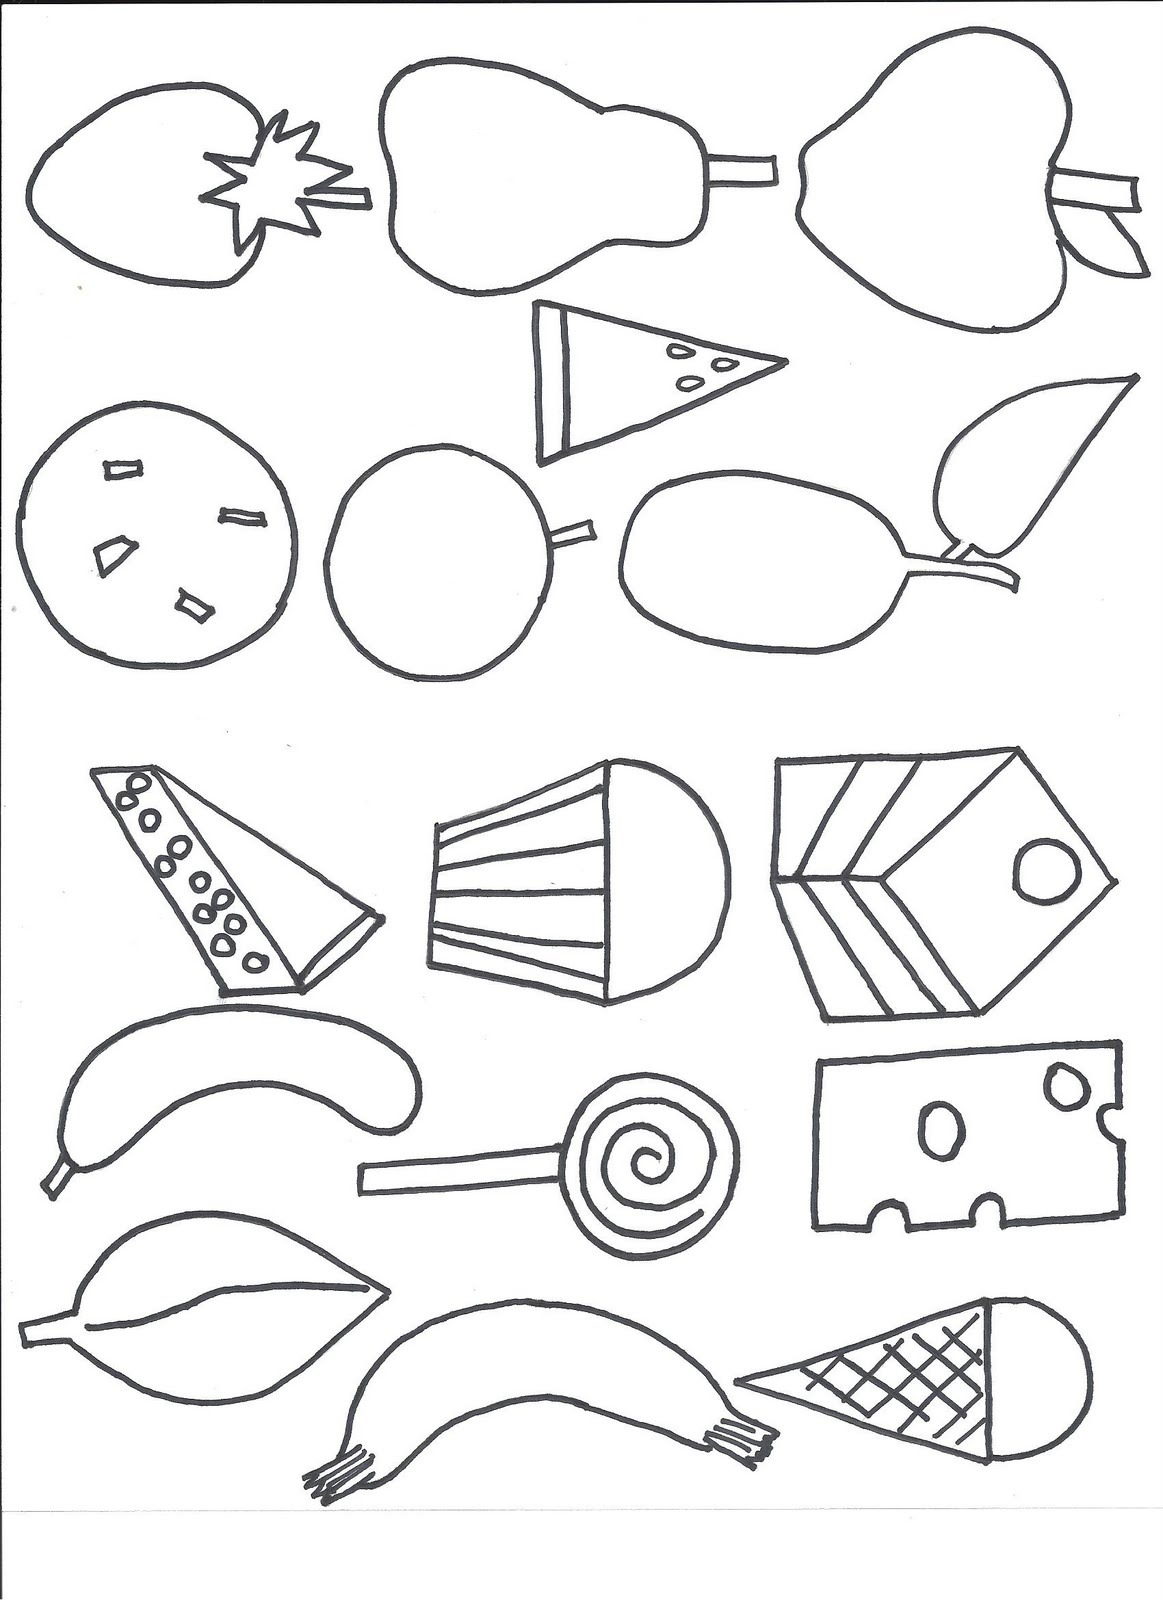 Hungry Caterpillar Coloring Pages Hungry Caterpillar Coloring Pages Capricus Me In The Very Butterfly